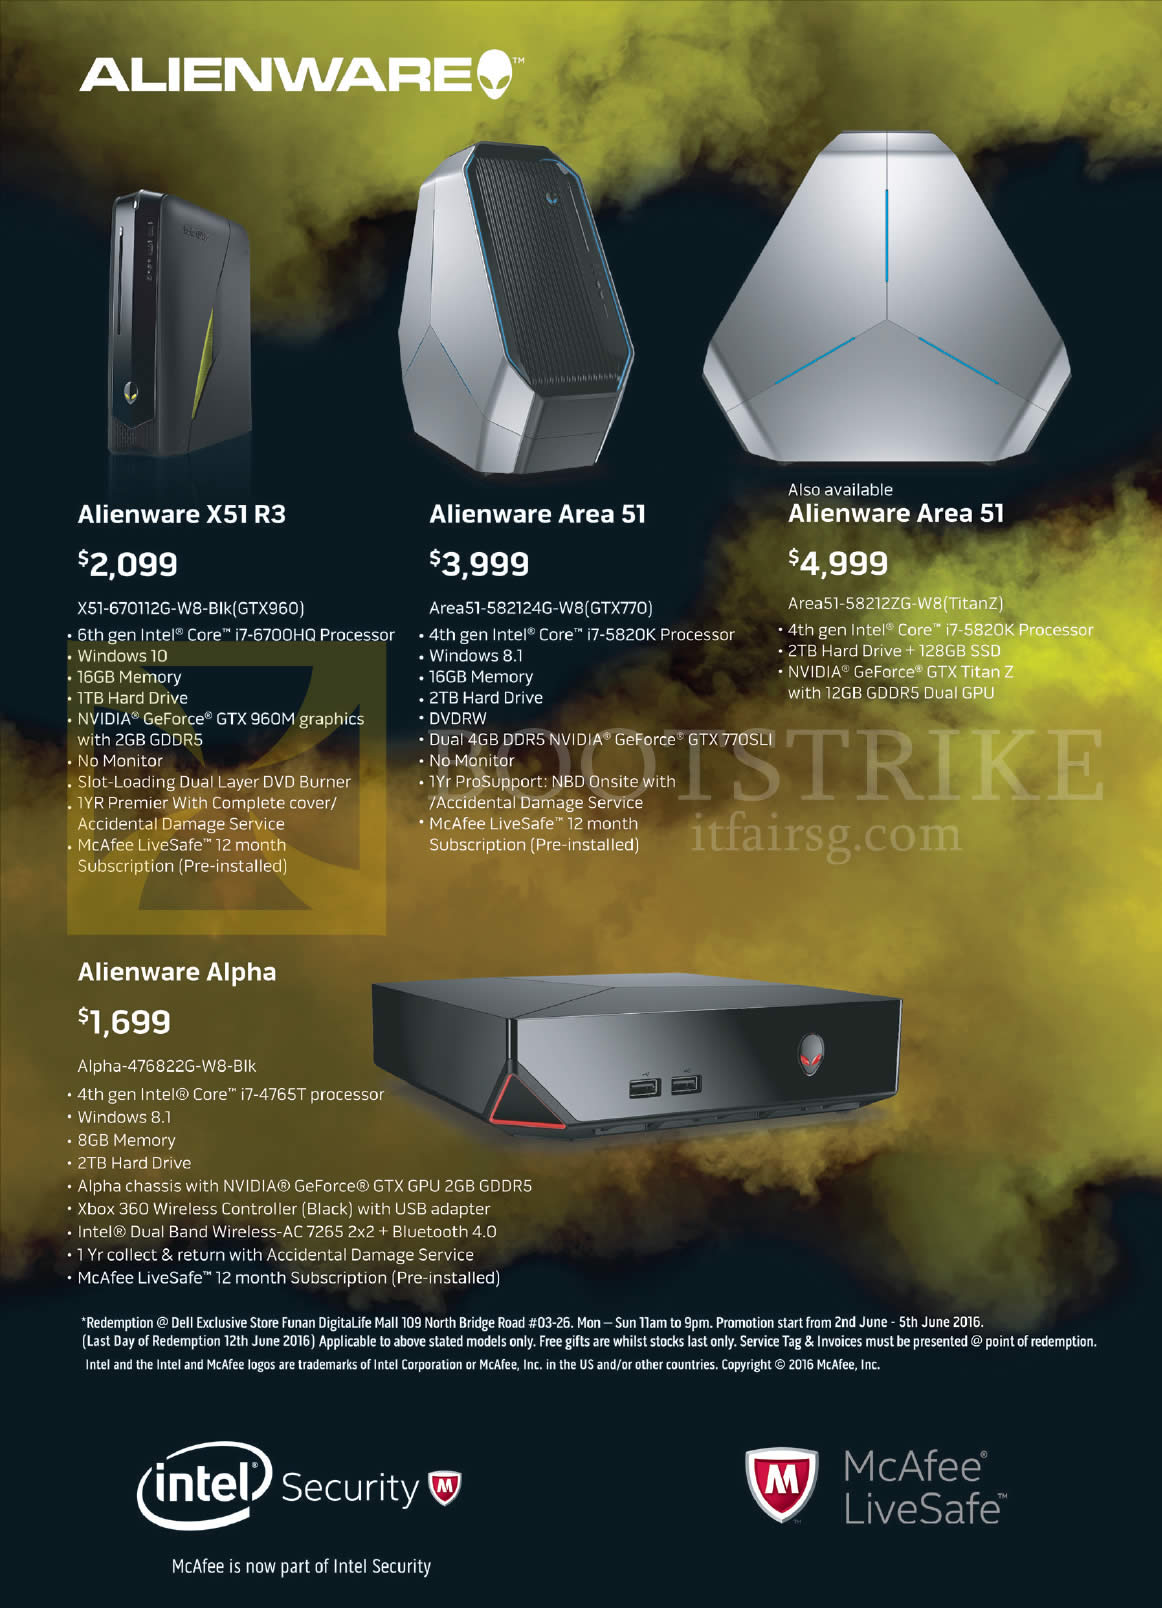 PC SHOW 2016 price list image brochure of Dell Notebook Alienware X51 R3, Area 51, Alpha